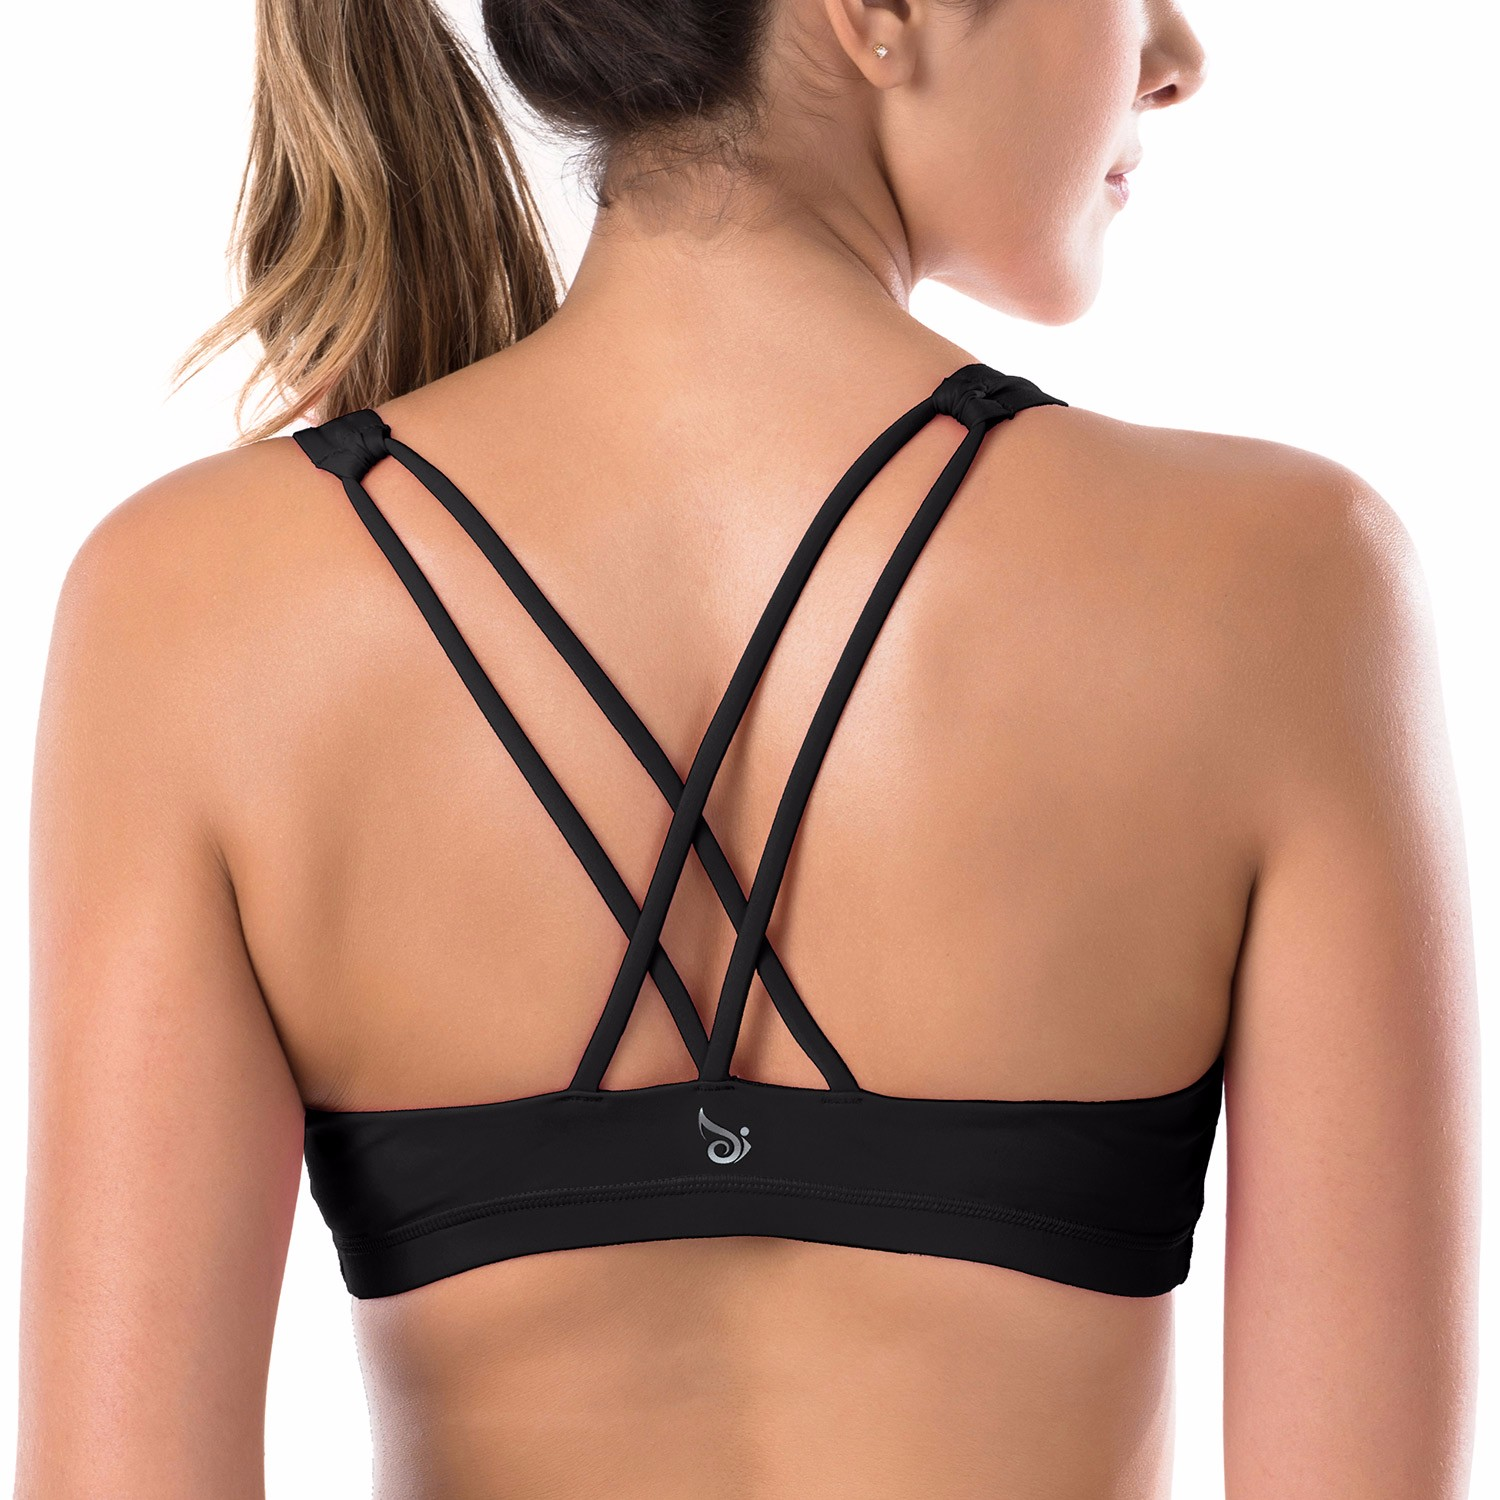 Queenie Ke Womens Yoga Sport Bra Light Support Strappy: Women's Cross Back Low Support Removable Pads Wirefree